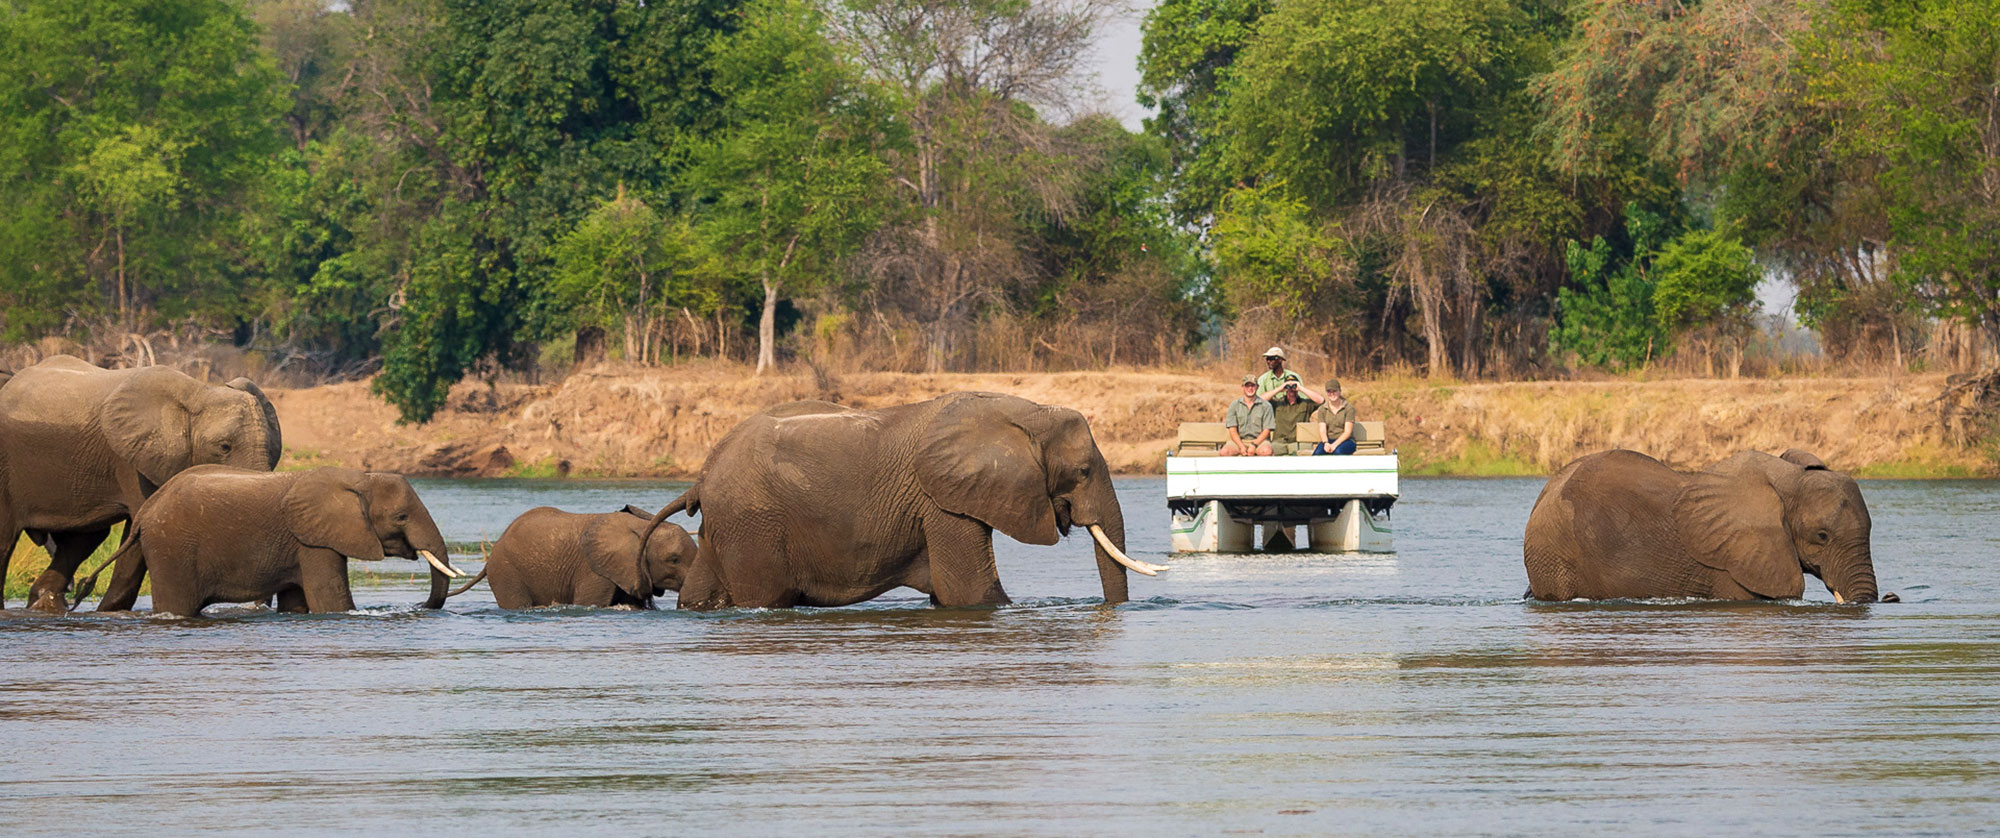 Classic Zimbabwe Safari Package - Little Ruckomechi Camp, Mana Pools National Park, Zambezi River Wildlife Cruise